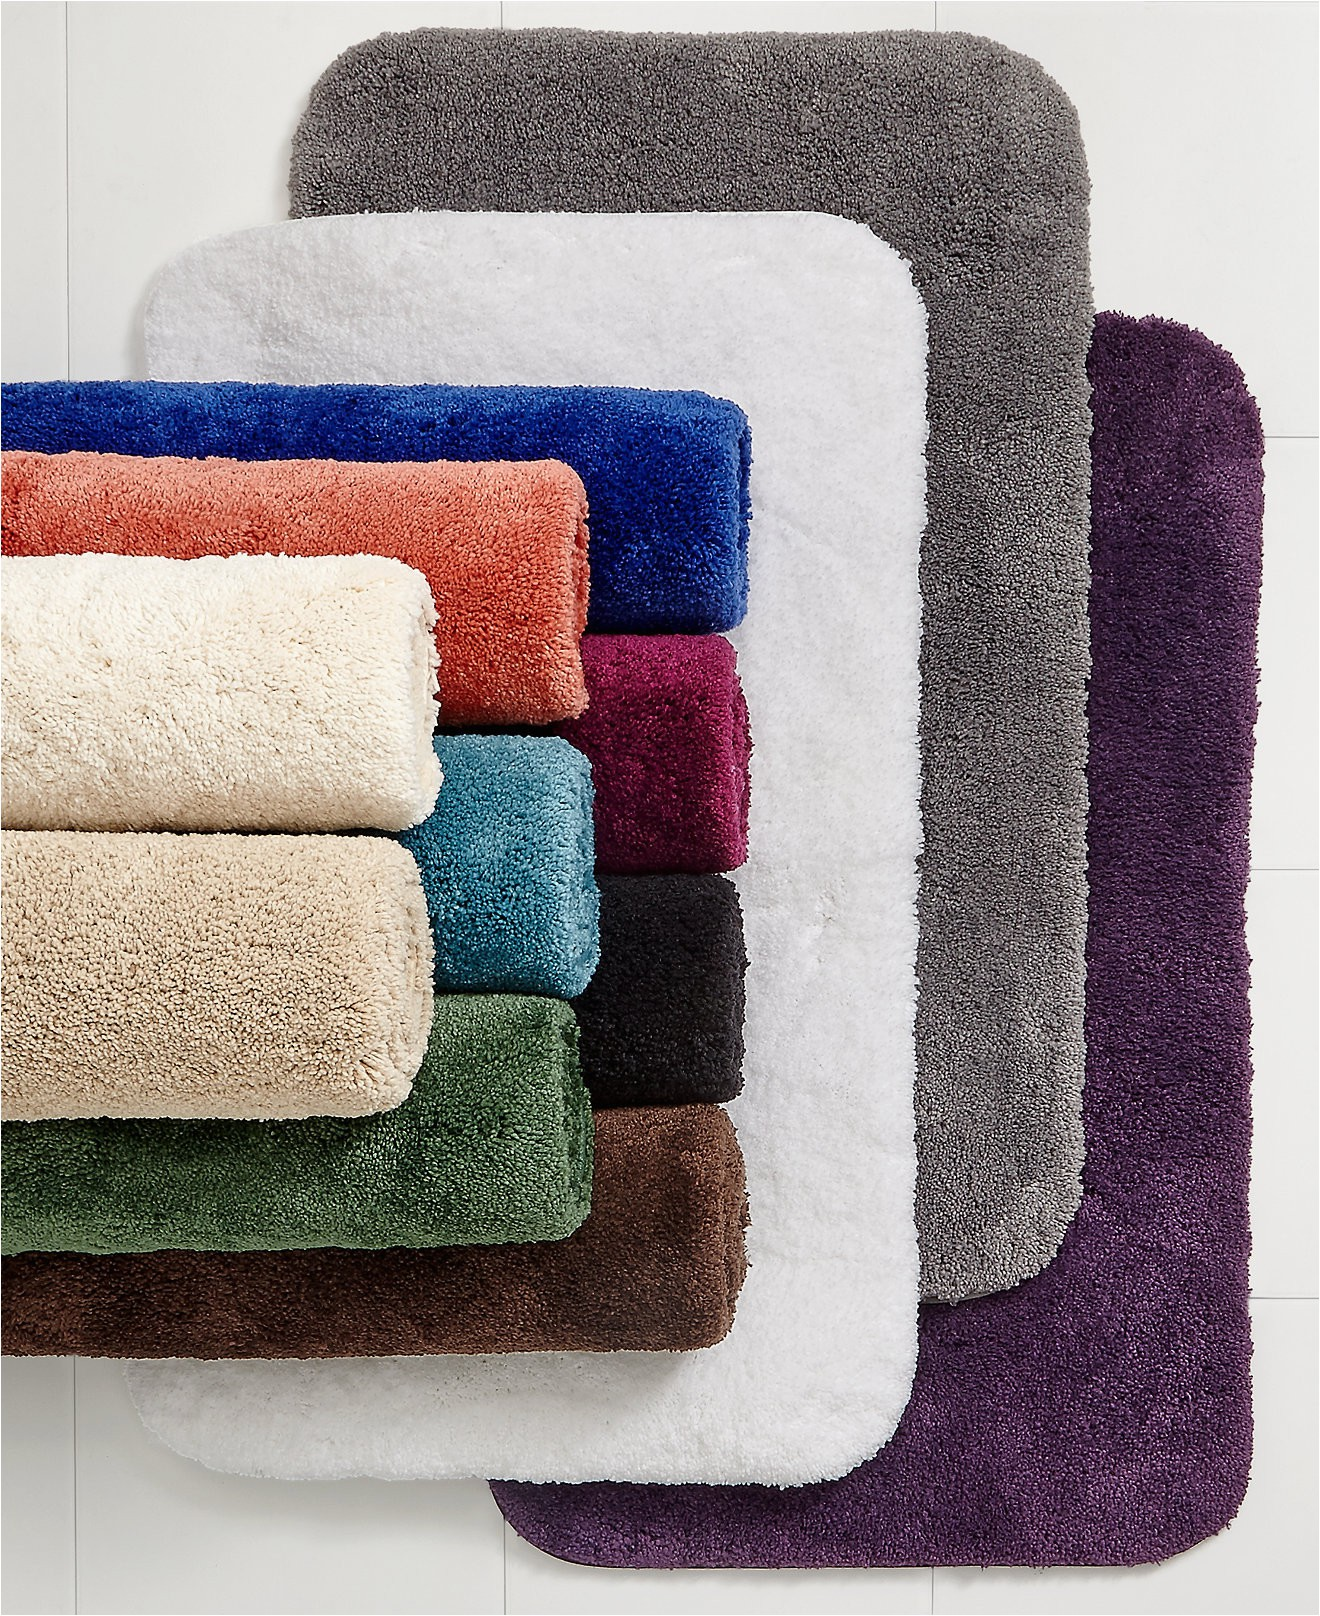 Bed Bath and Beyond Small area Rugs 3 Piece Bathroom Rug Set Bed Bath and Beyond Image Of